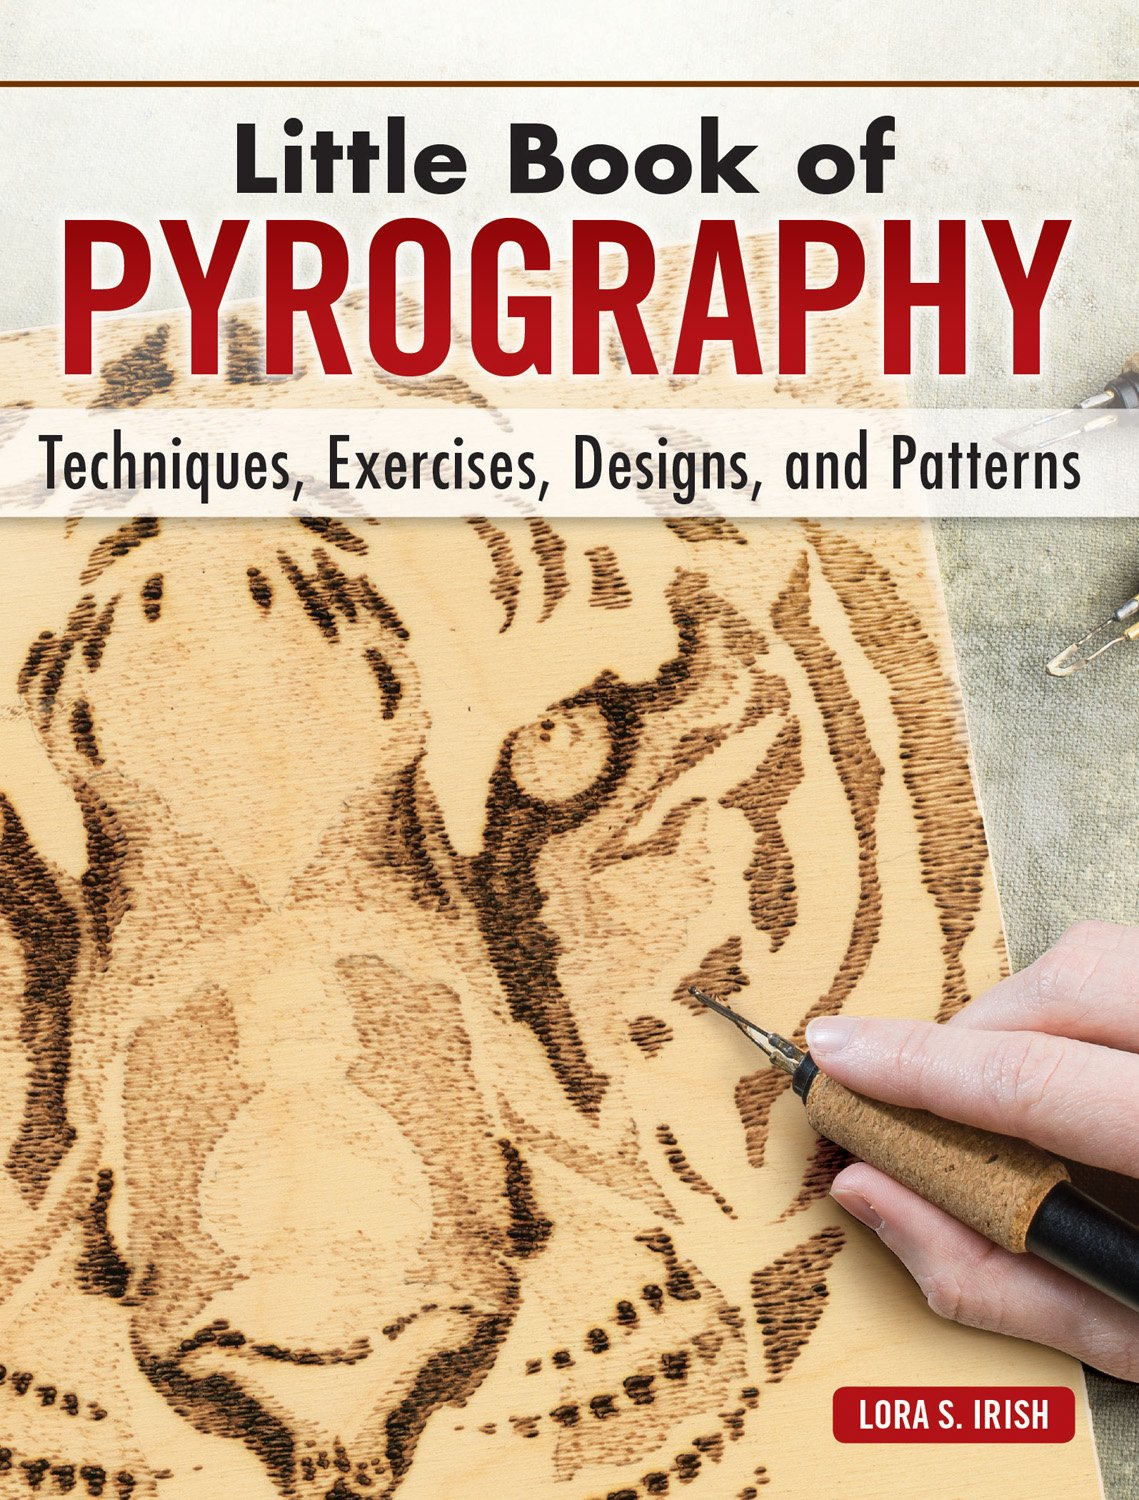 little book of pyrography techniques exercises designs and patterns fox chapel publishing pocket size gift edition with step by step instructions expert woodburning advice from lora irish